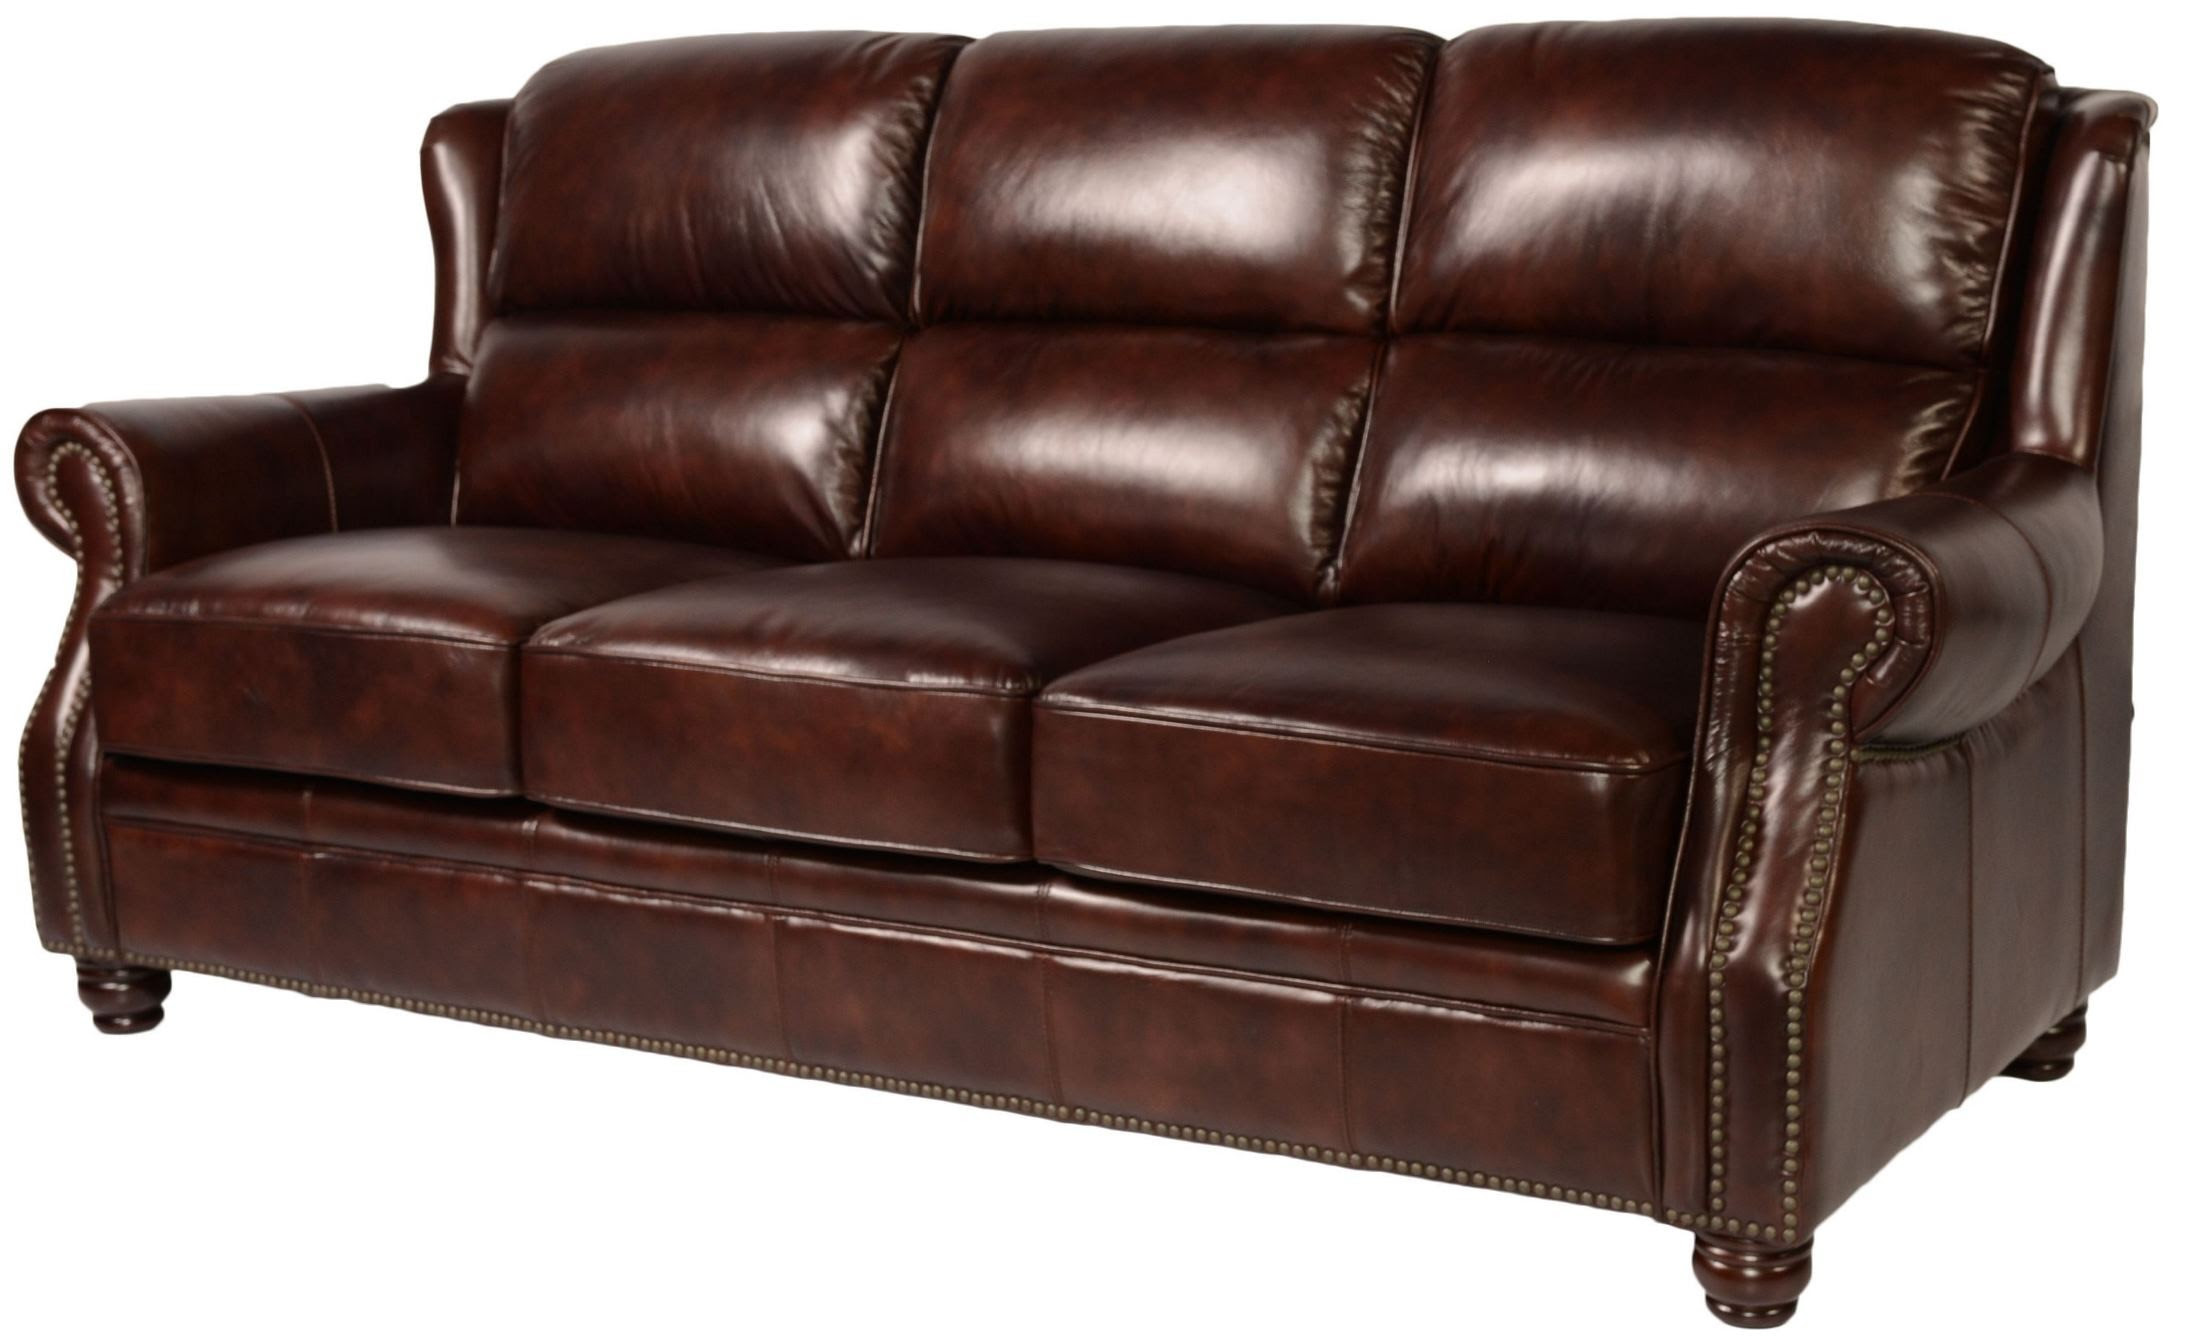 Appalachian Rustic Savauge Leather Living Room Set from ...